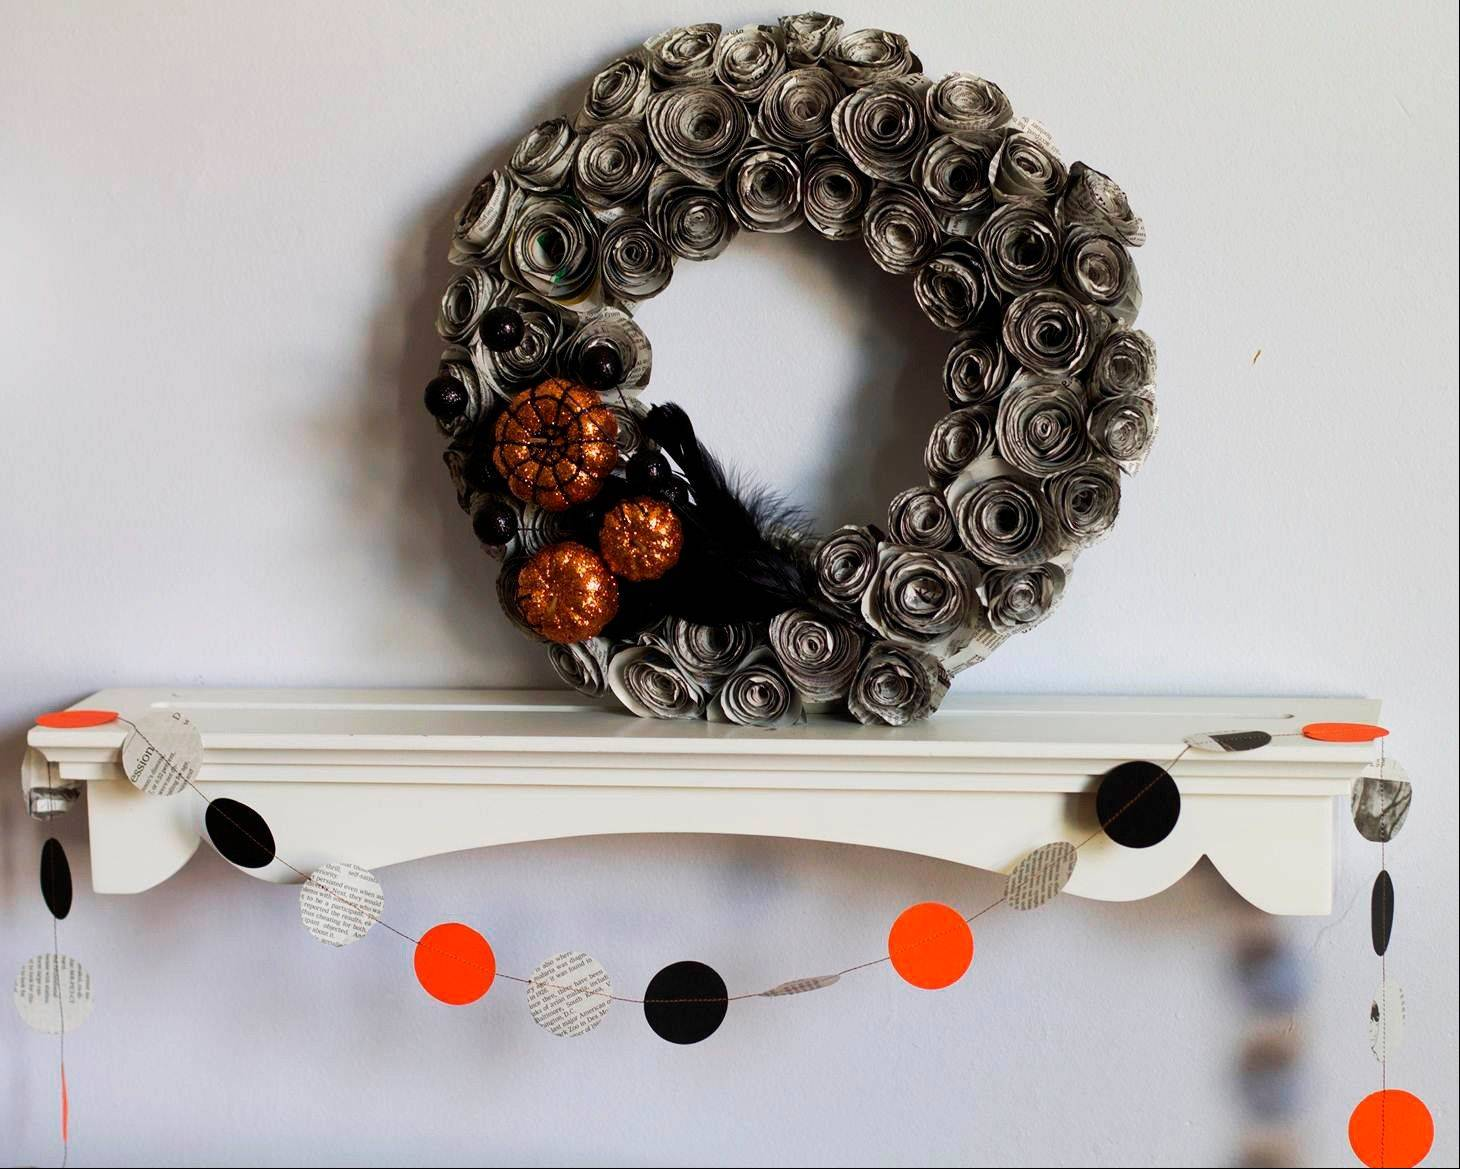 With its black and white color scheme, newspaper can be the perfect starting point for Halloween crafts. Just add some orange accents and turn newspapers into easy garlands or more elaborate paper flowers to adorn a wreath.